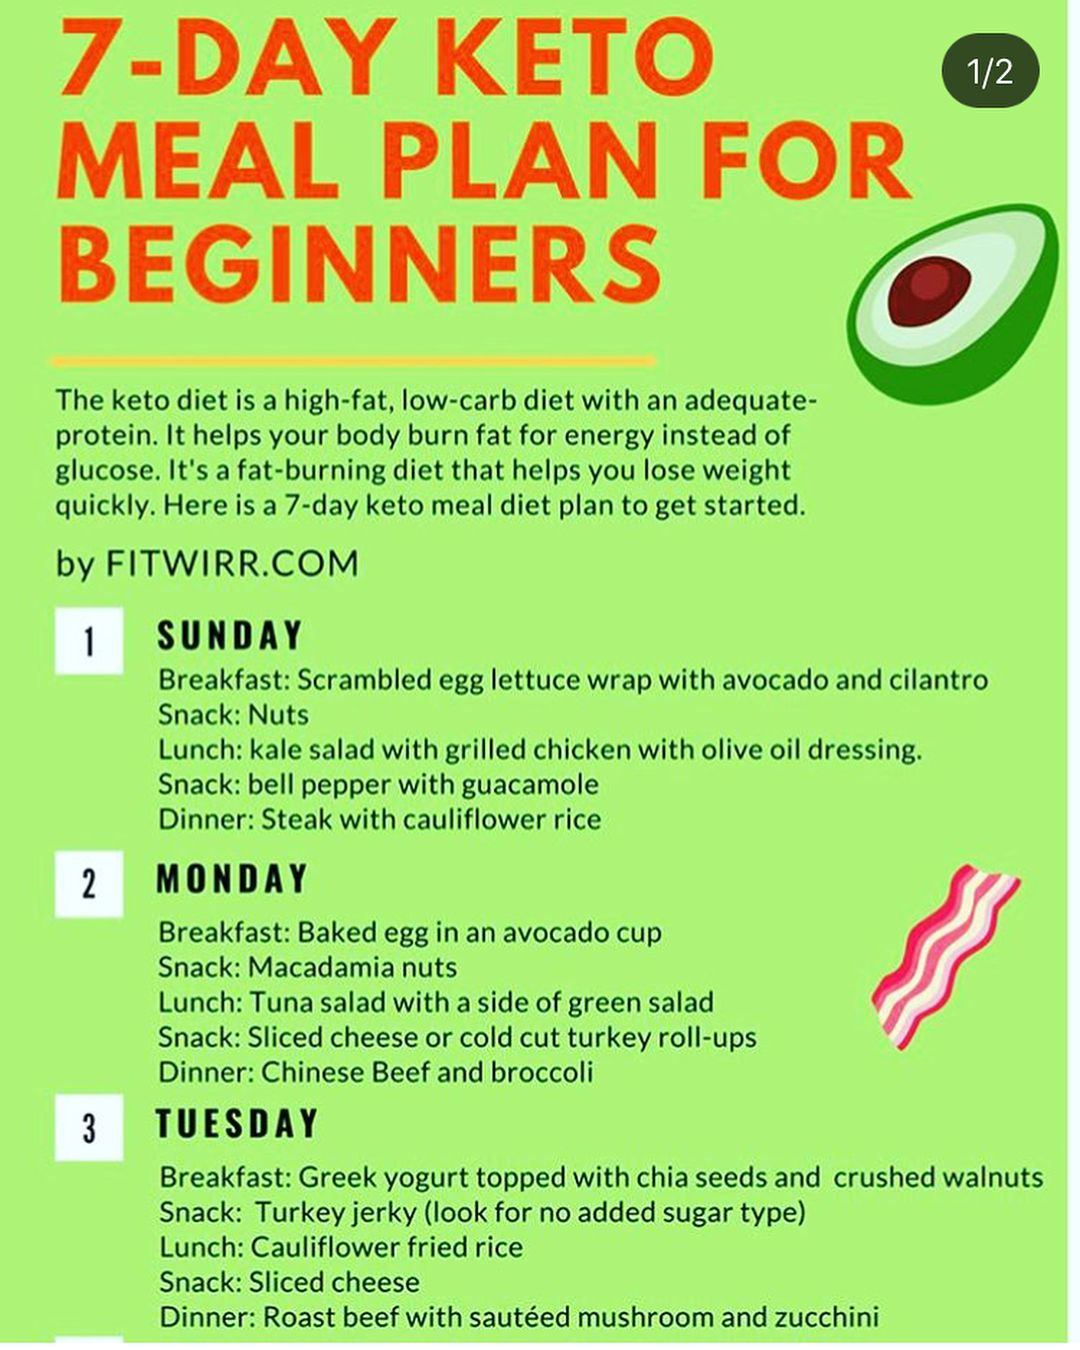 Keto Inc On Instagram 7 Day Keto Meal Plan Please Keep In Mind That This Does Not Include Portion Sizes Cal Keto Meal Plan Keto Diet Keto For Beginners